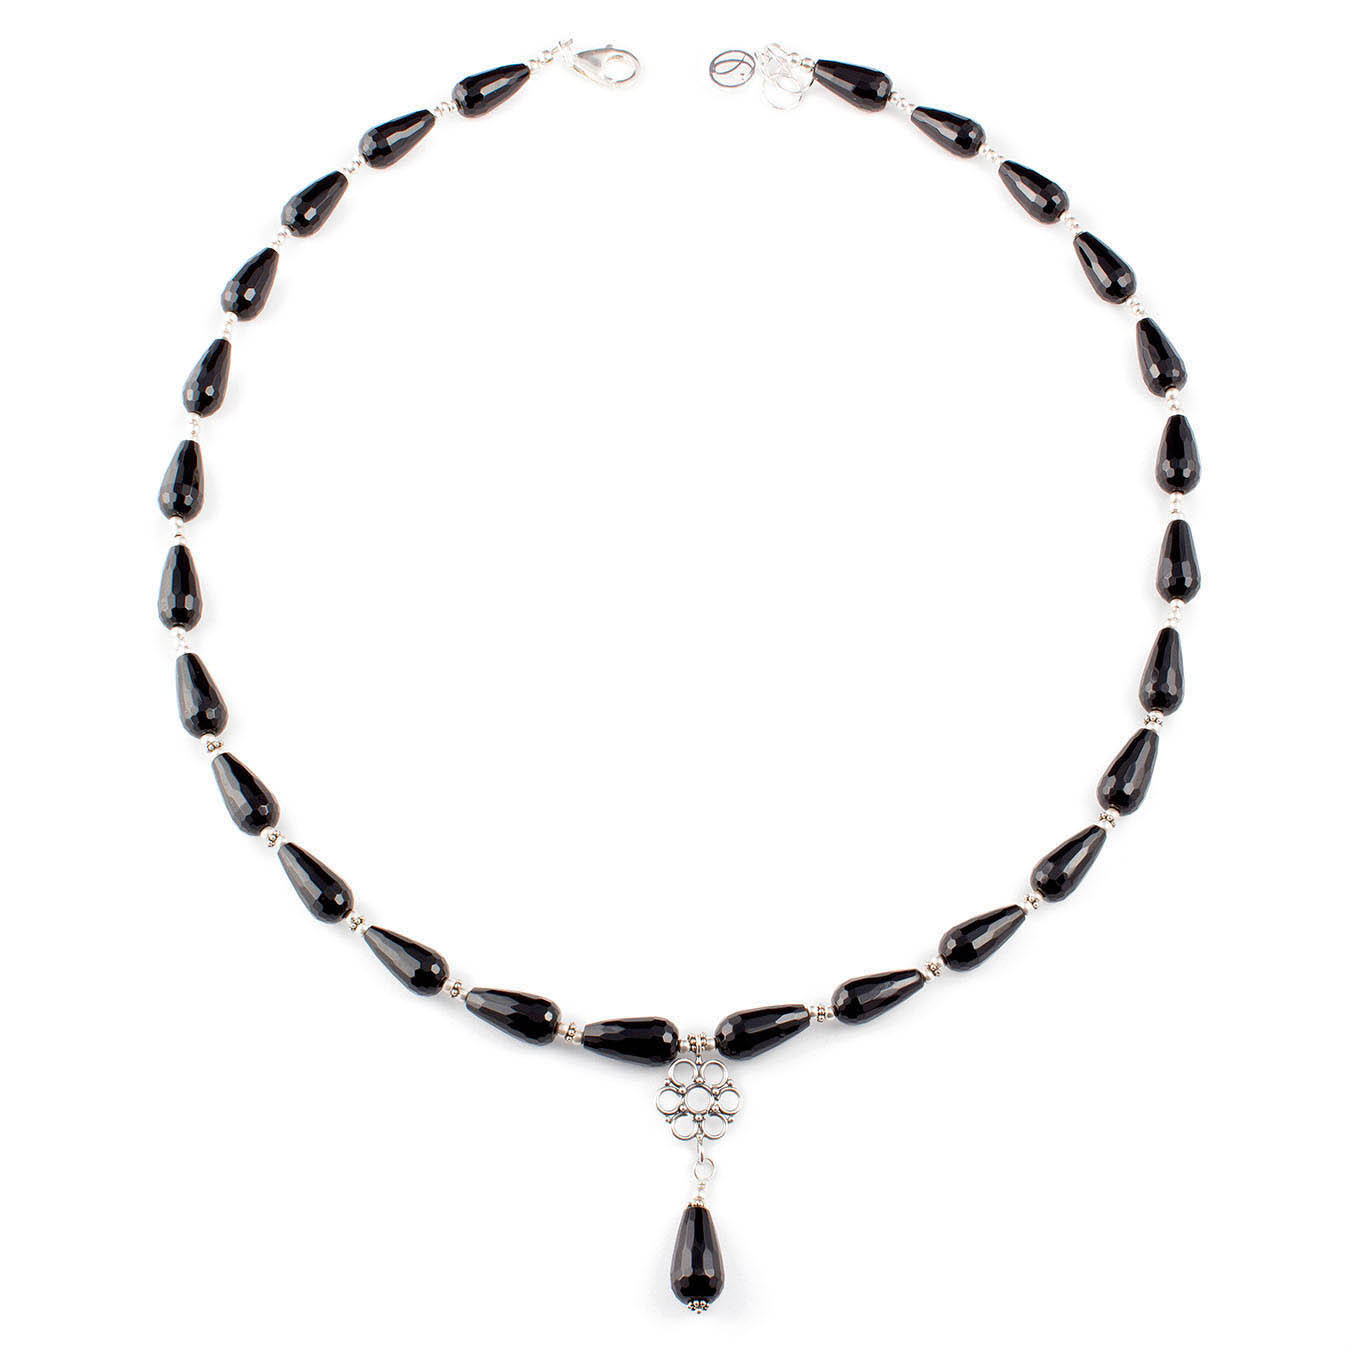 Handcrafted necklace made with black agate gemstones and bali silver